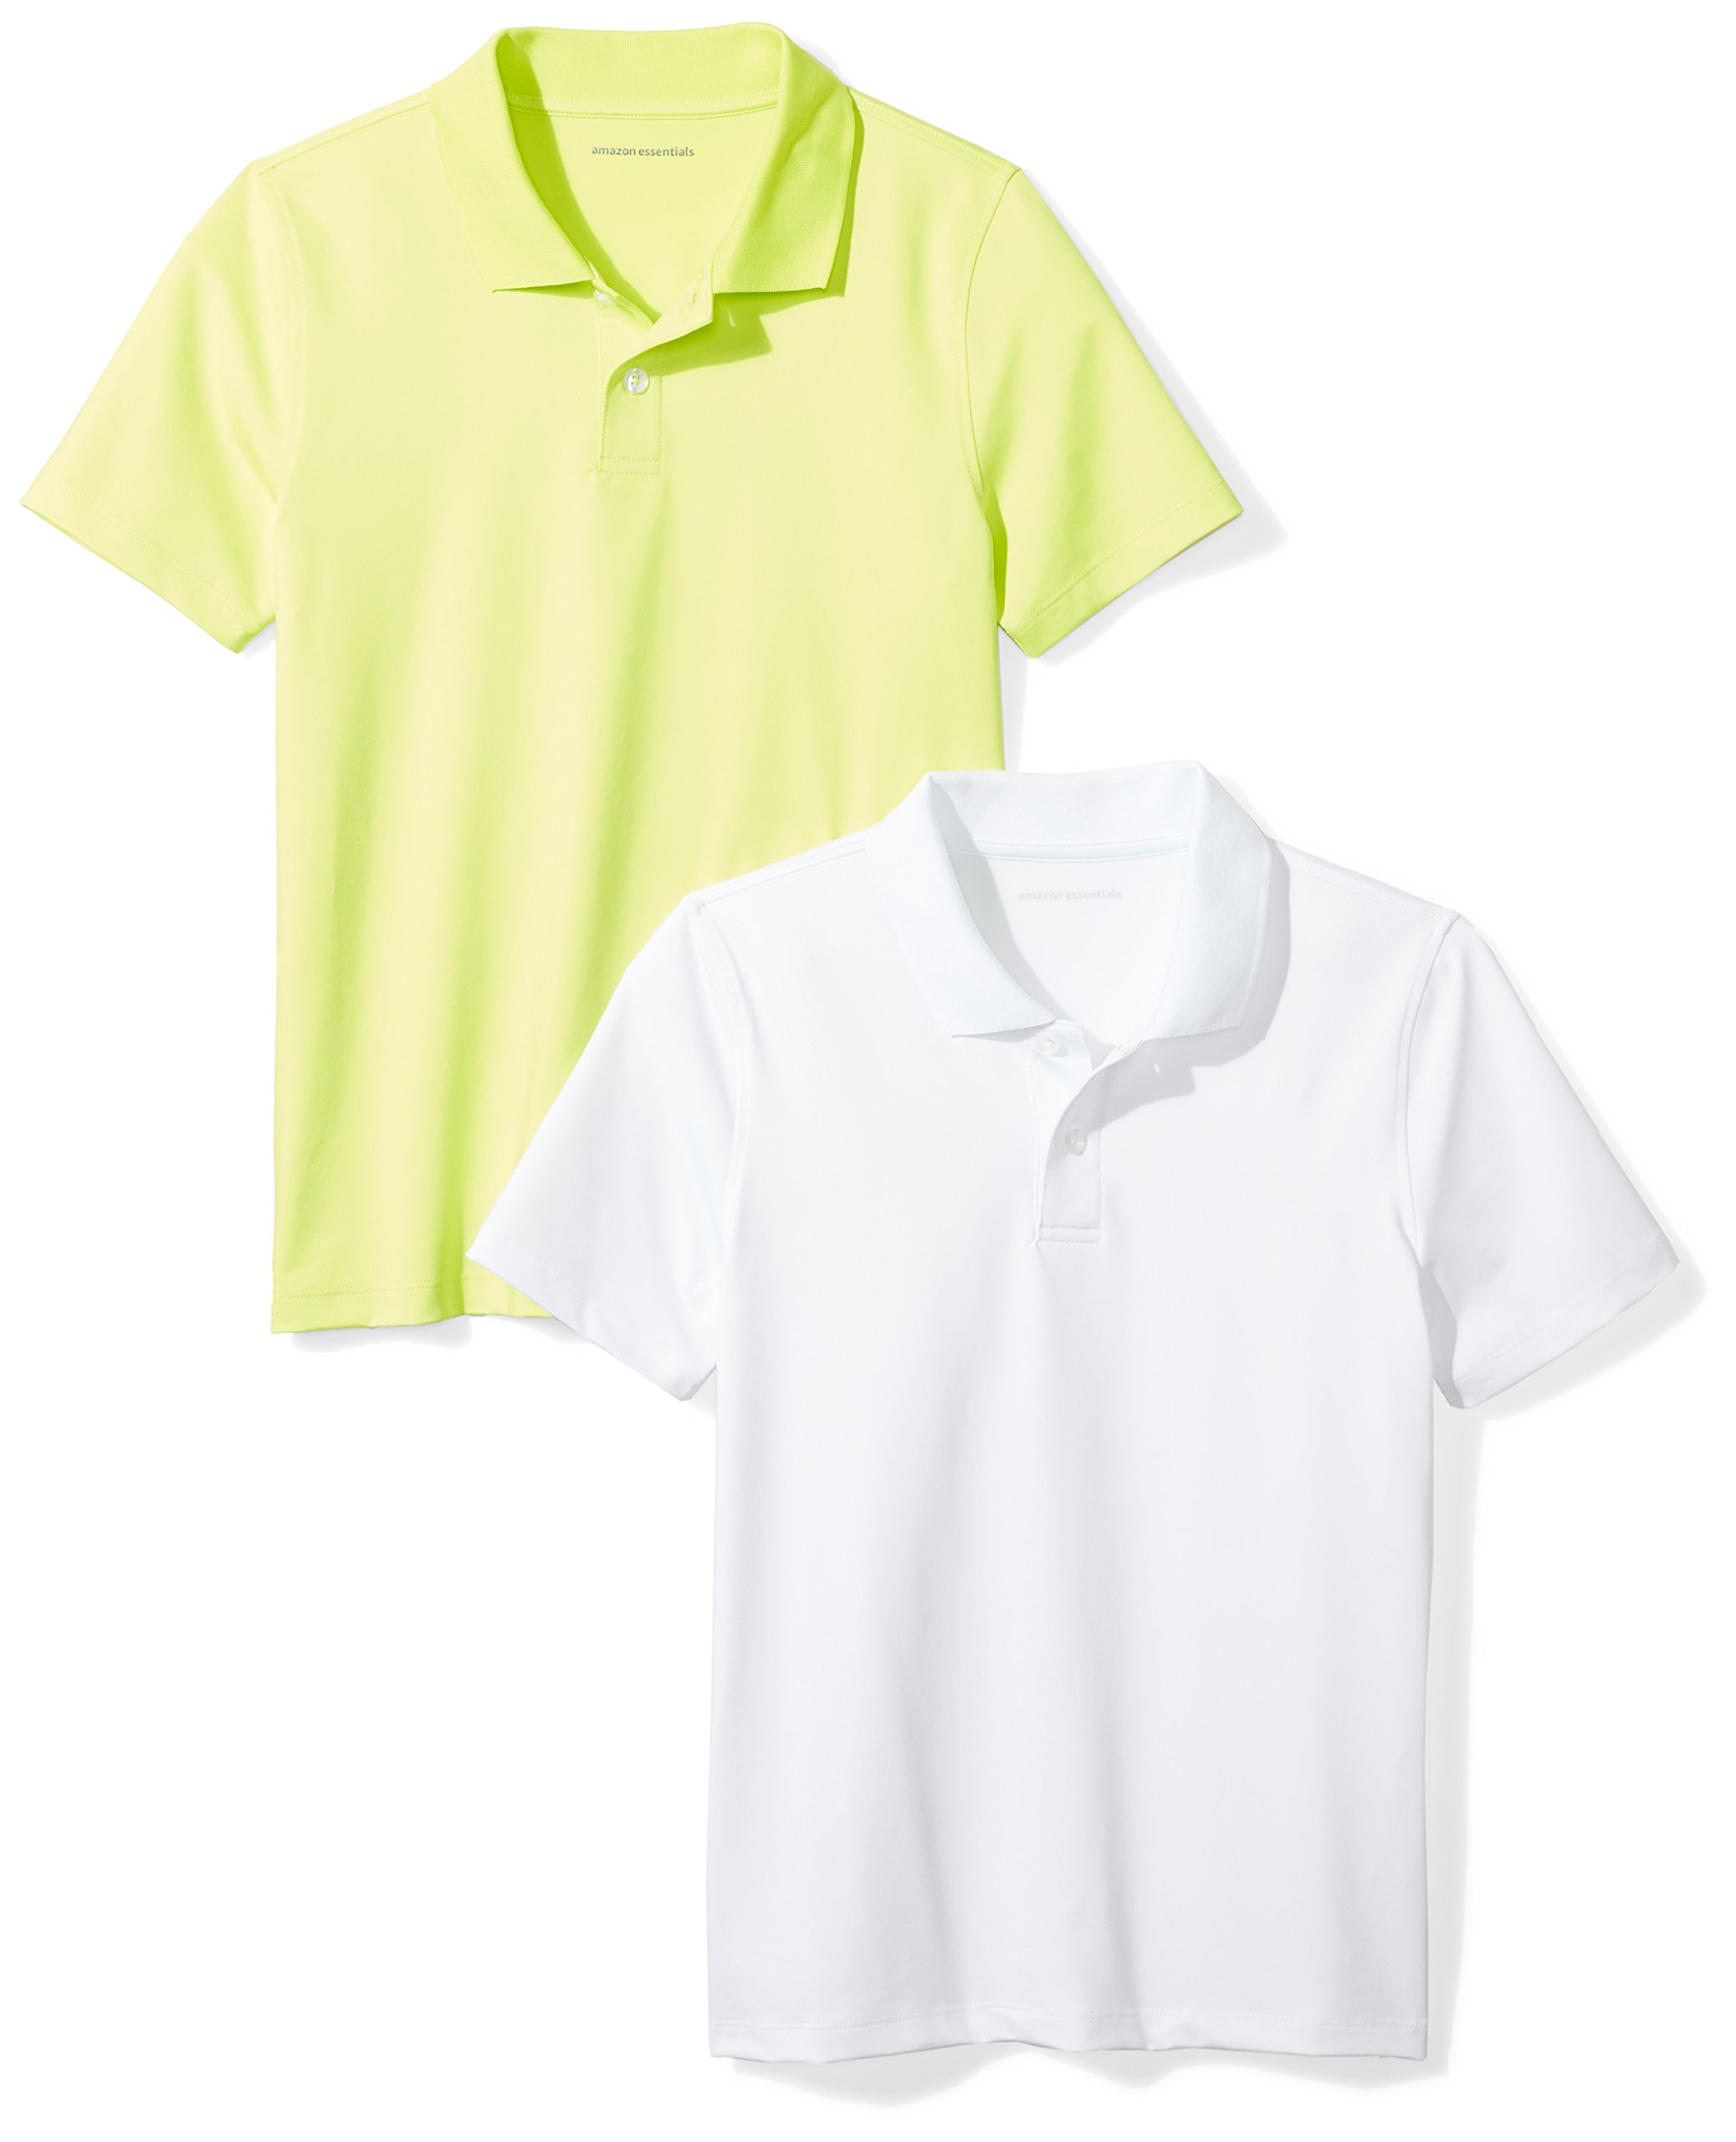 Amazon Essentials Toddler Boys' 2-Pack Performance Polo, Lime/White, 2T by Amazon Essentials